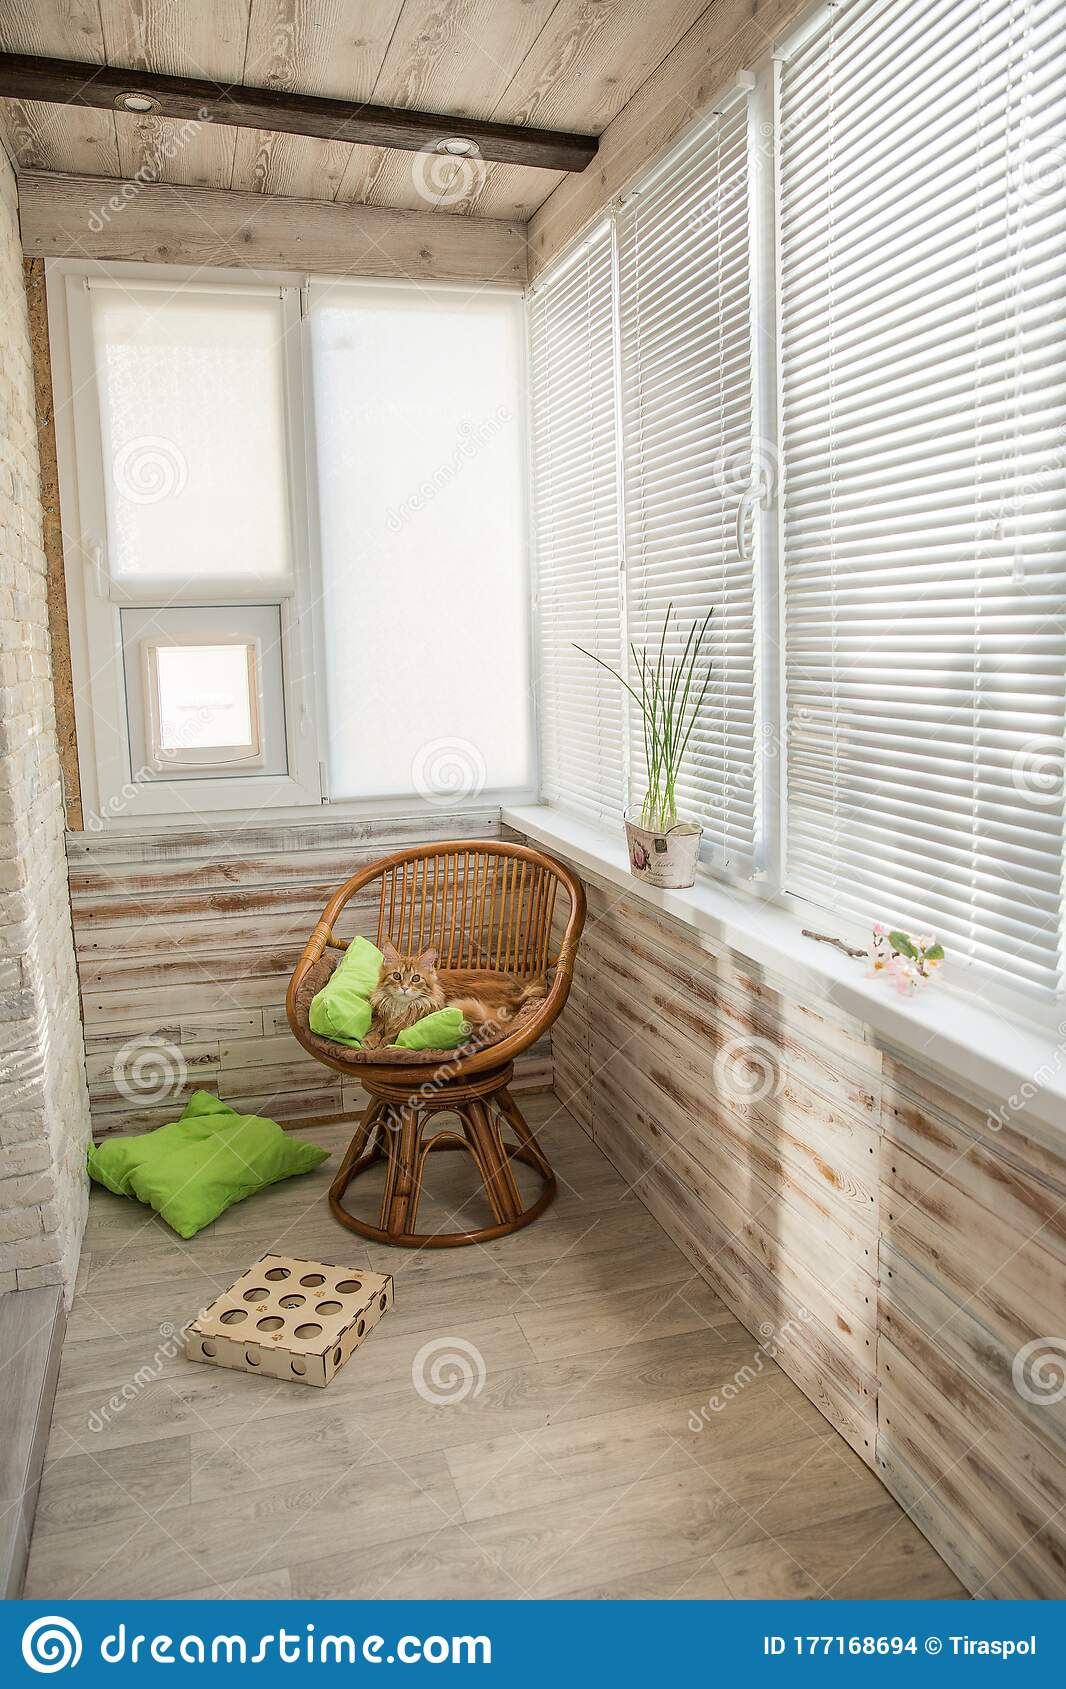 window sill pillow for rest with grass plant pot home rest space on kitchen windowsill interior with sunlight spring bucket stock photo image of building floor 177168694